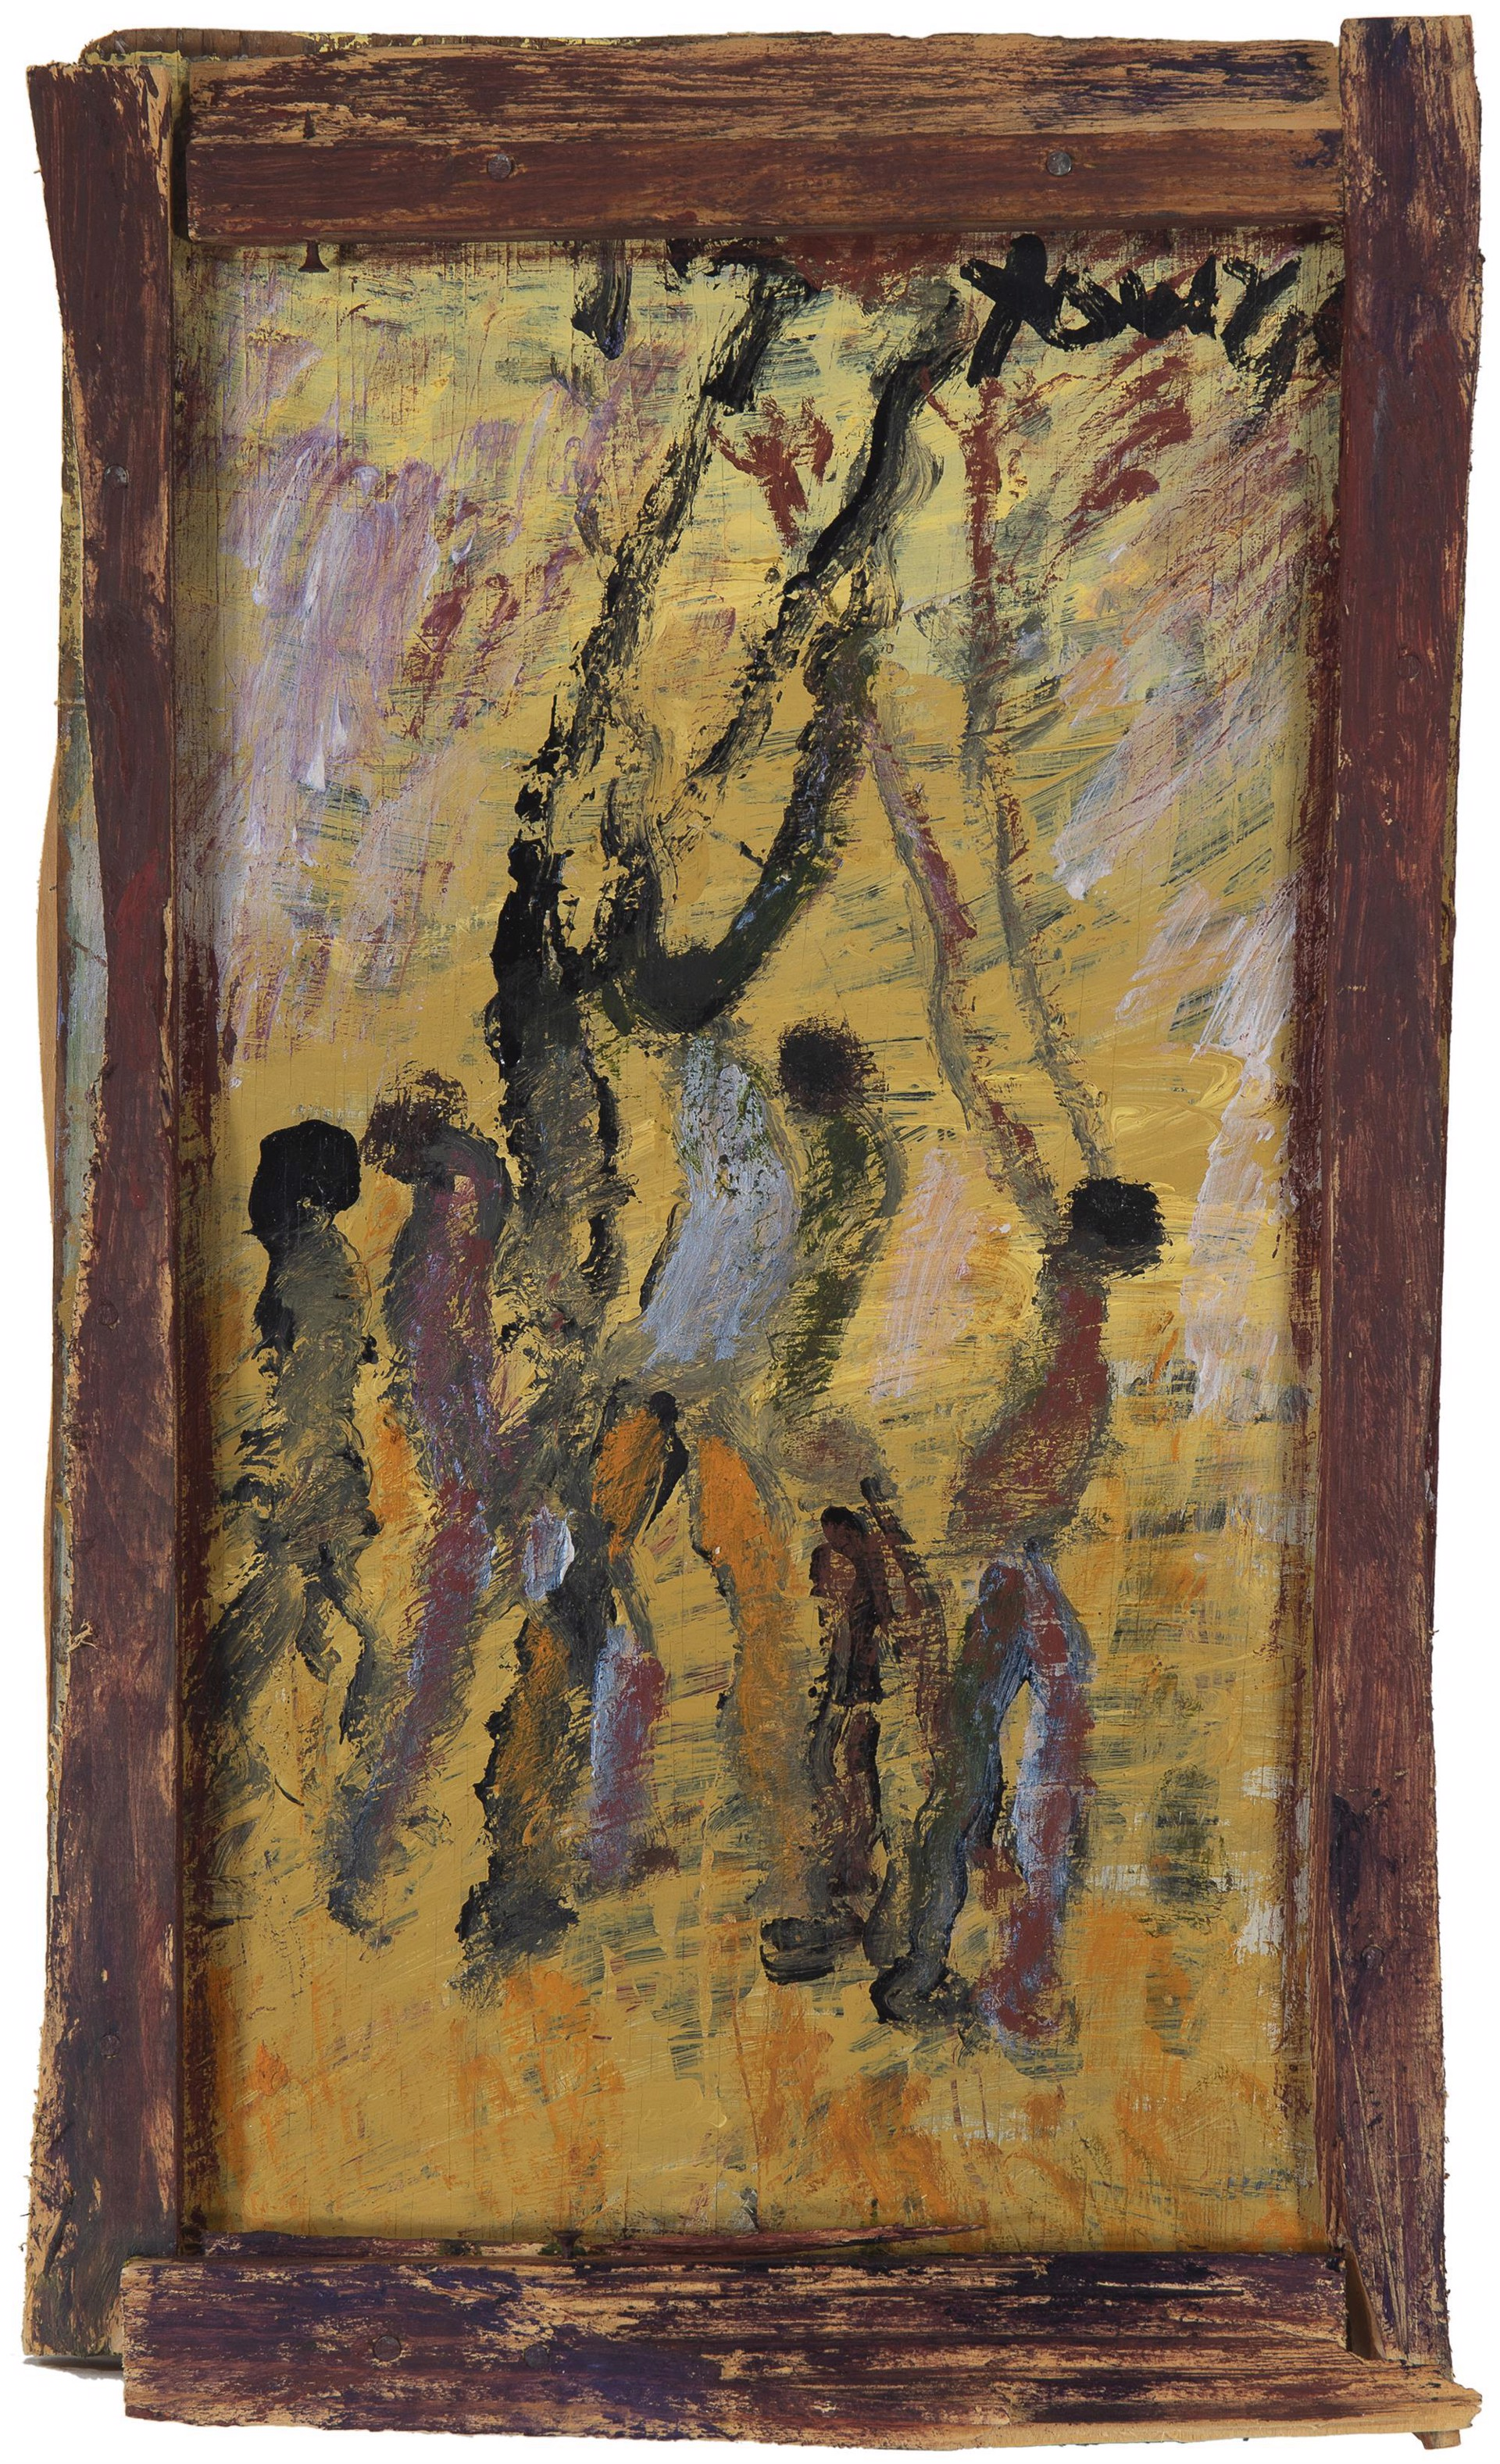 Basketball Figures by Purvis Young (1943 - 2010)